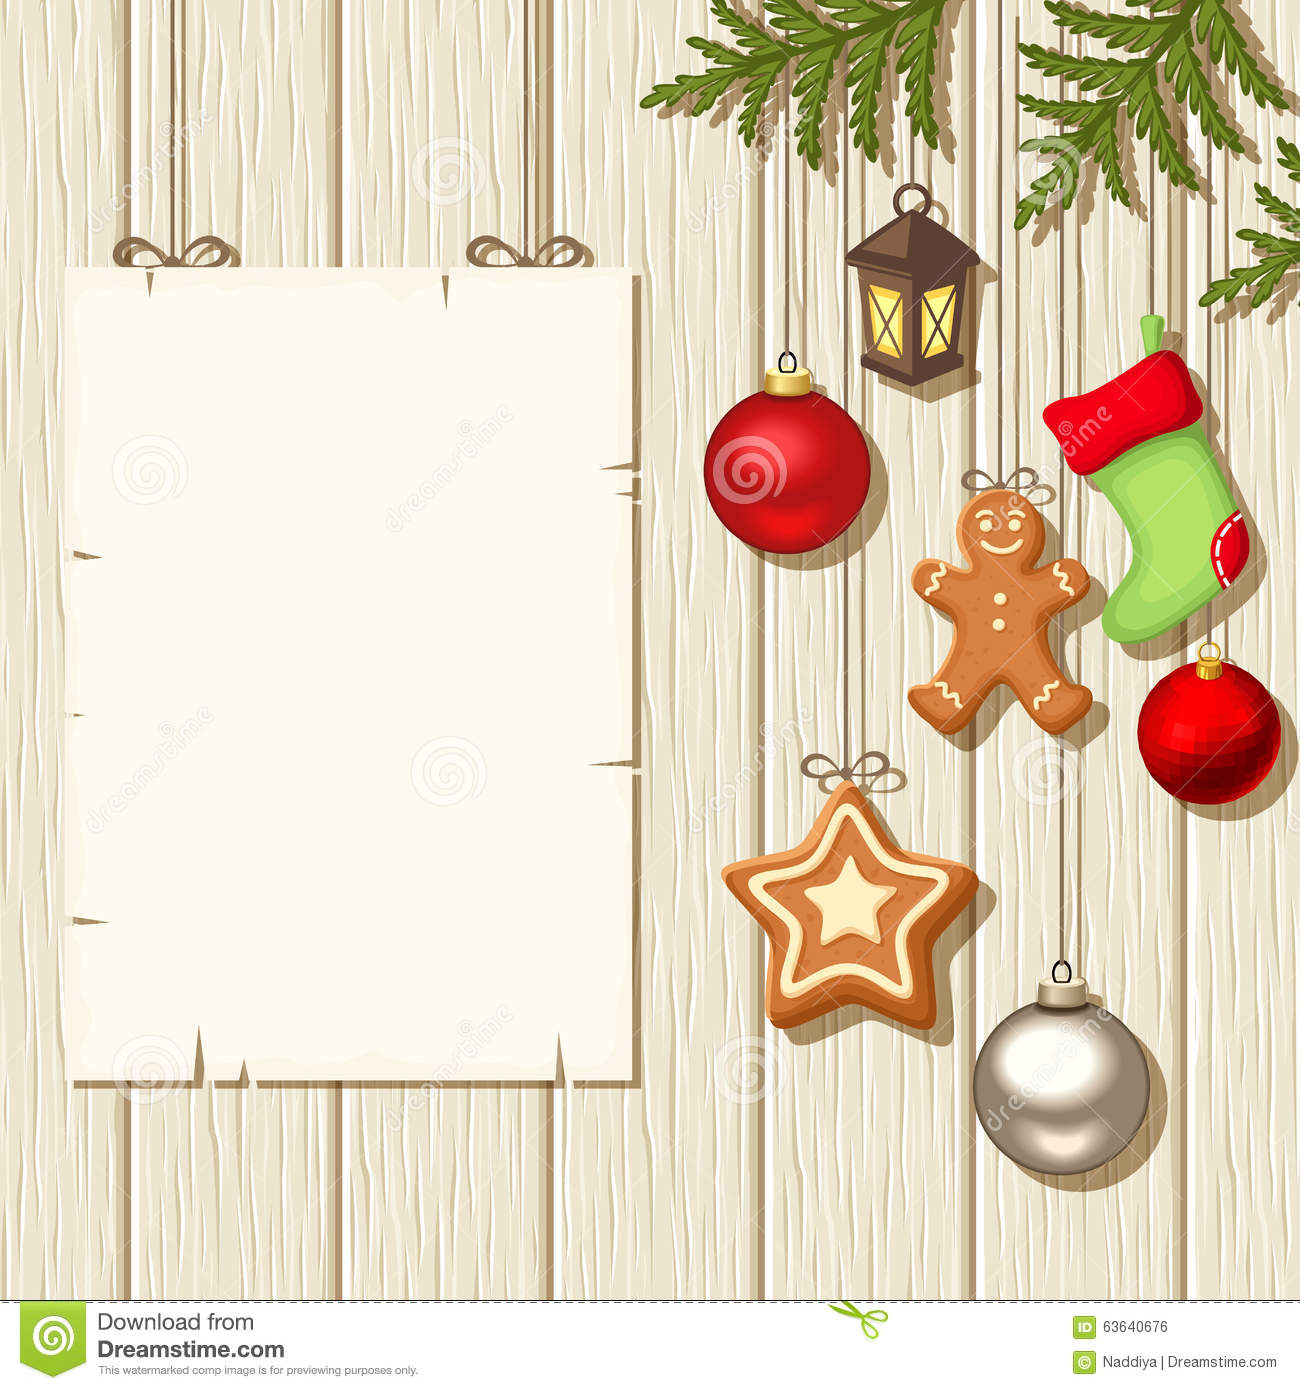 Christmas hanging decorations and a placard on a wooden background. Vector illustration.